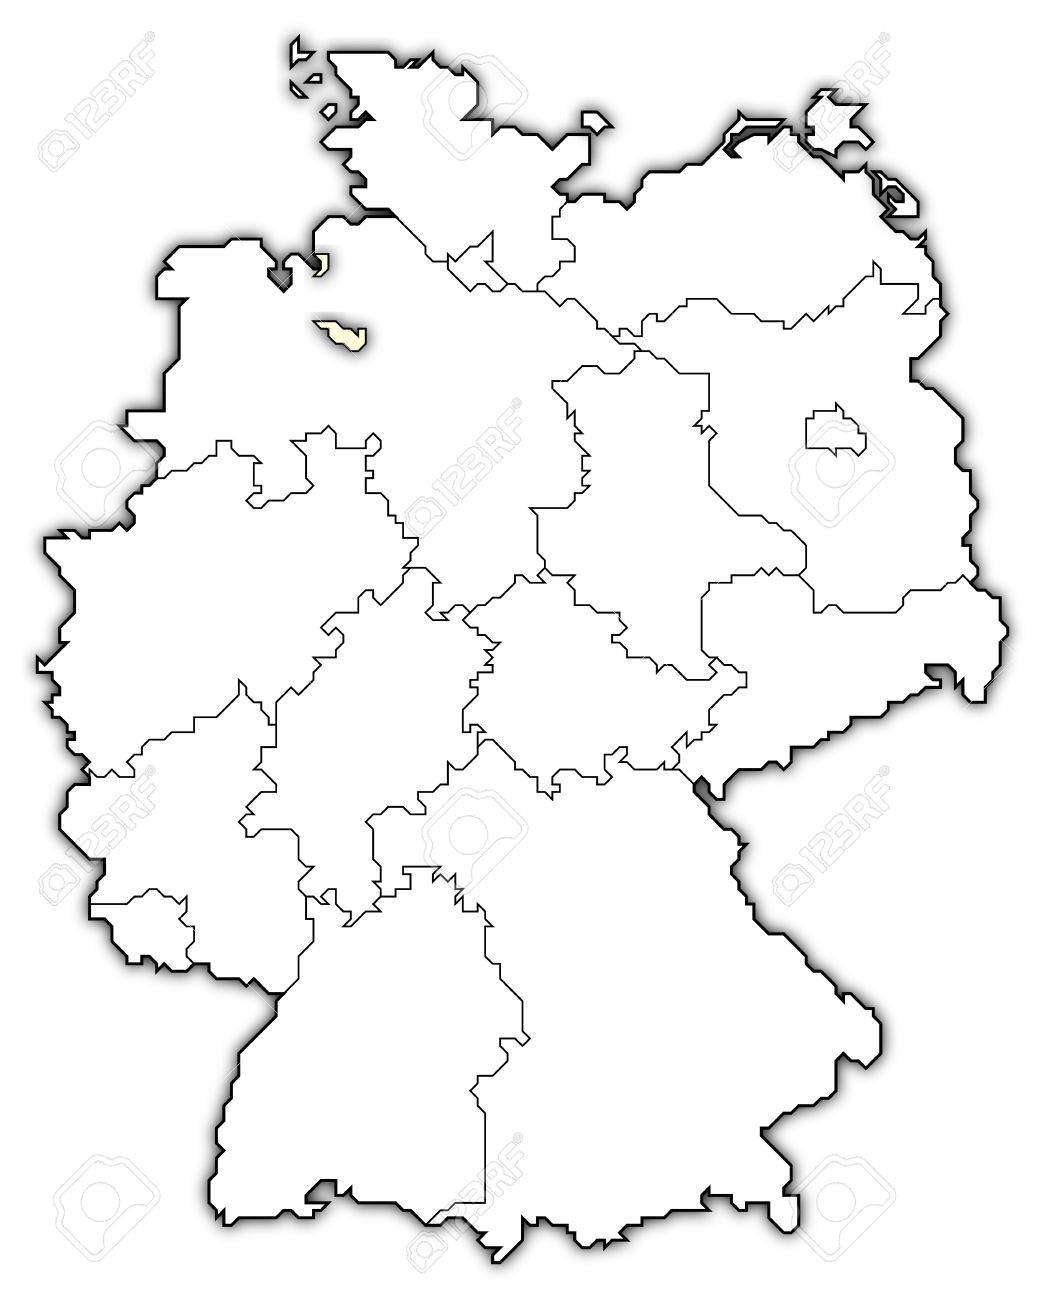 Germany Map Bremen Highlights Stock Photo Picture And Royalty - Germany map bremen